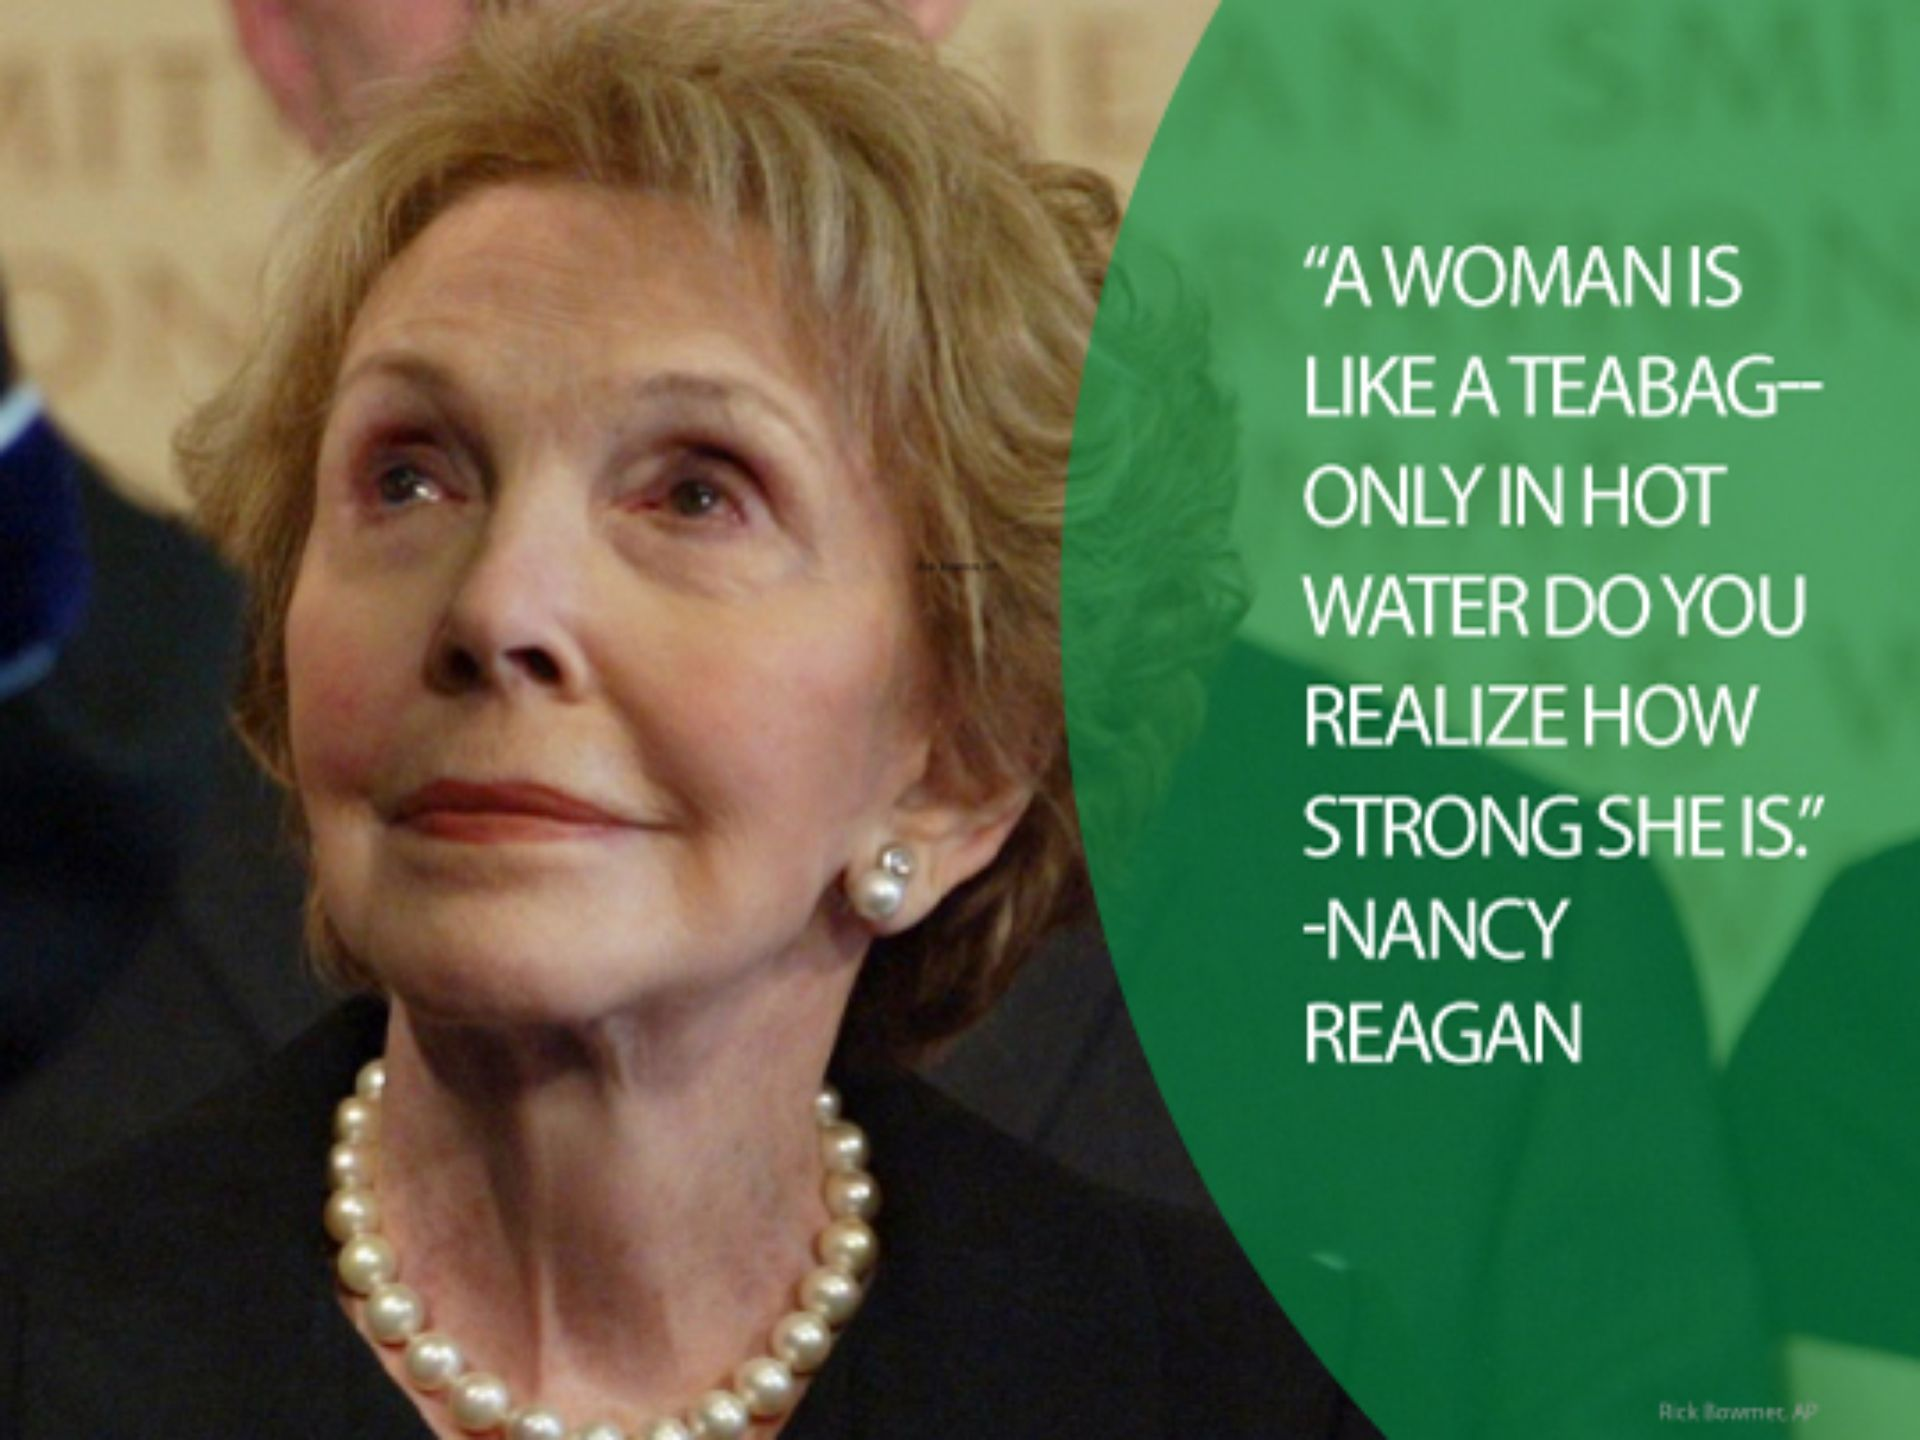 Quotes By Famous Women Quotes From Famous American Women  Nancy Reagan Nancy Dell'olio